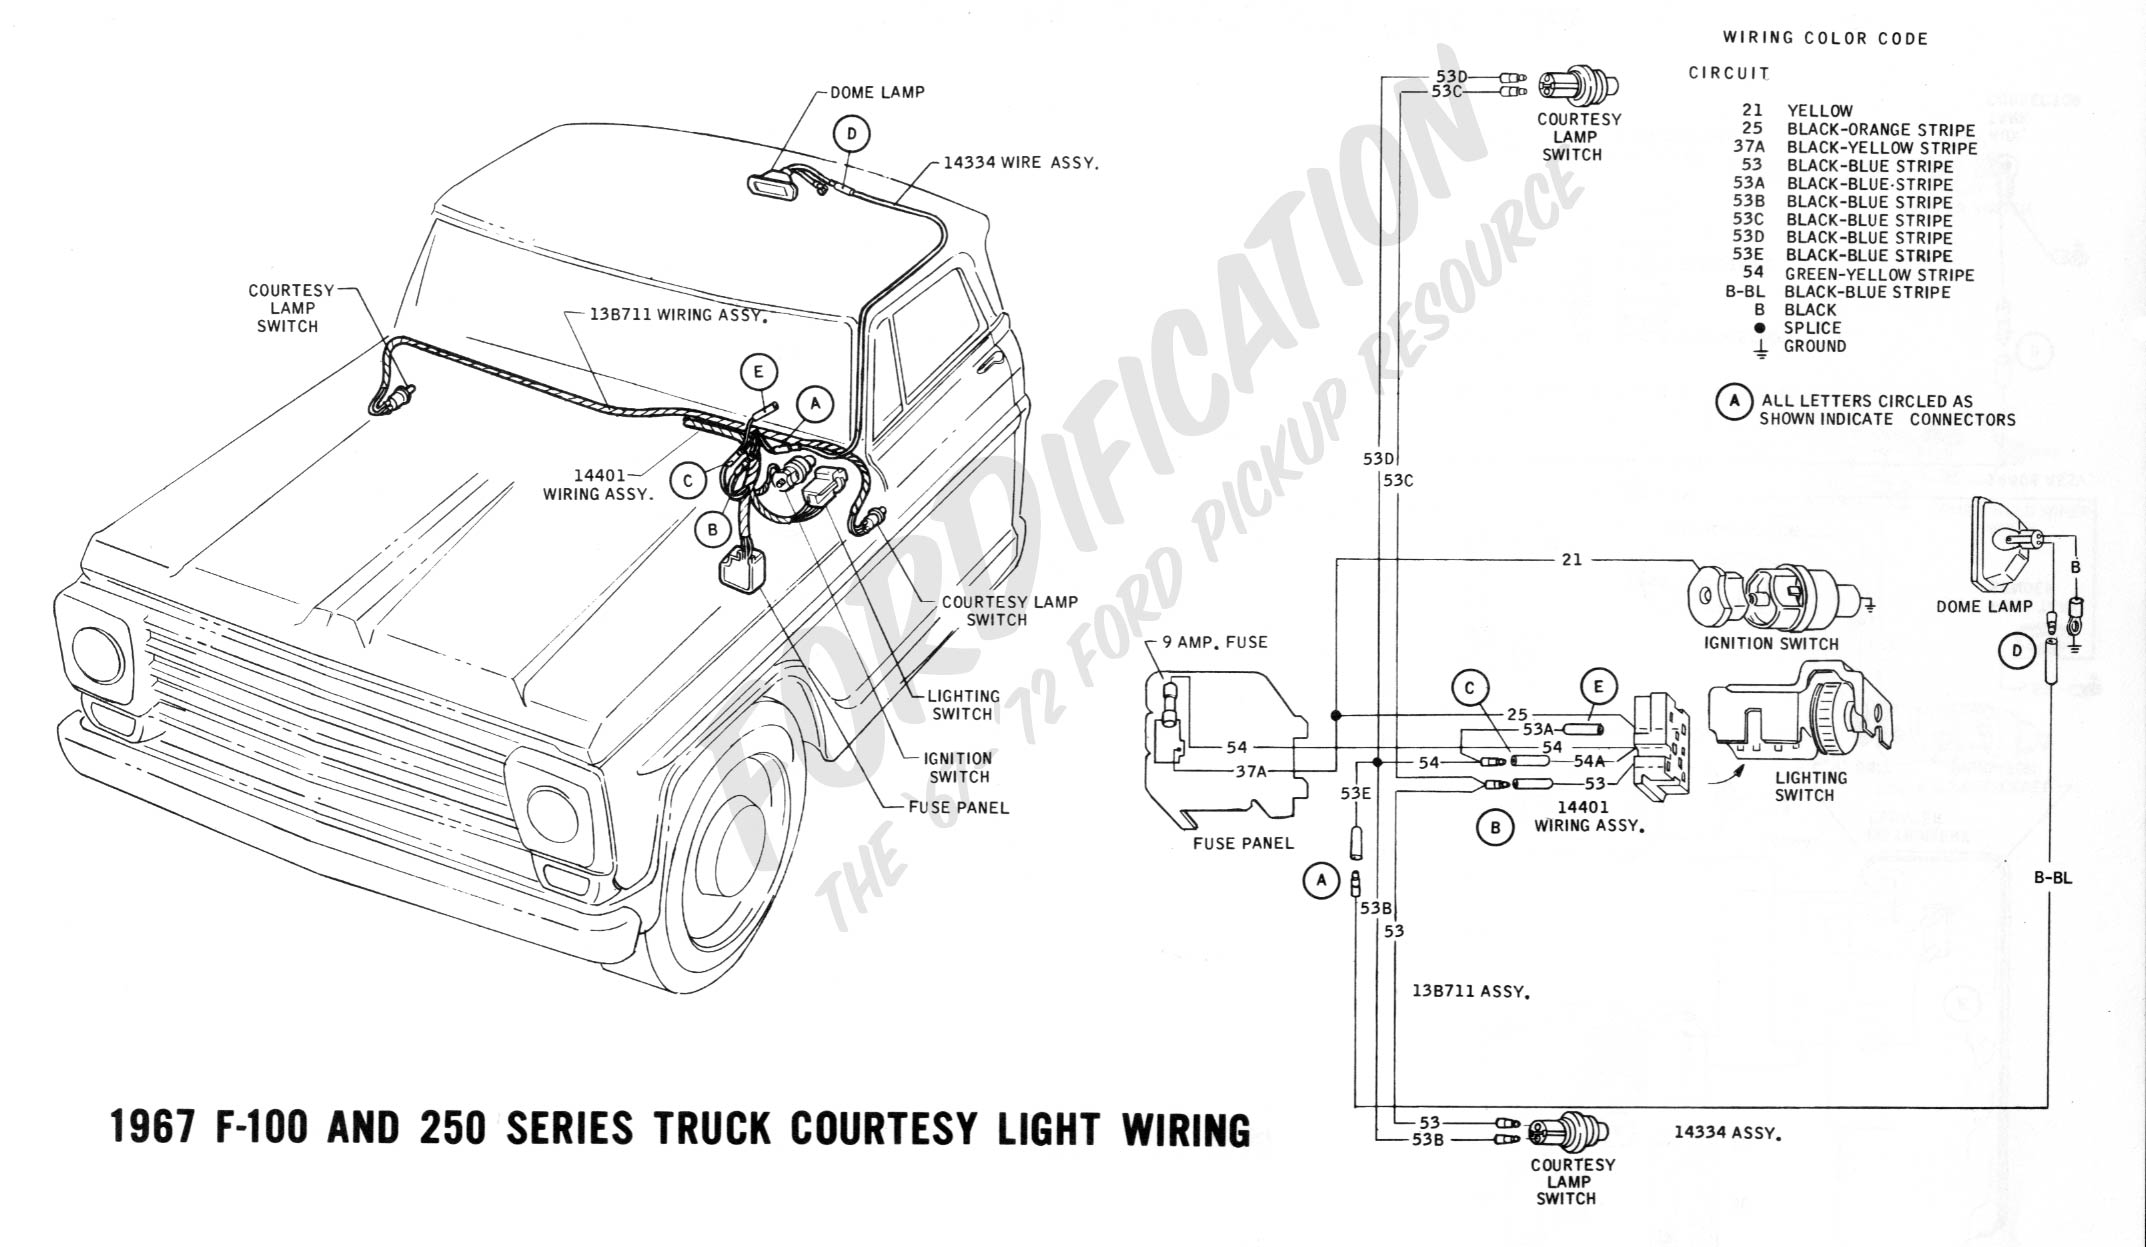 [SCHEMATICS_49CH]  Ford Truck Technical Drawings and Schematics - Section H - Wiring Diagrams | 1966 Ford Truck Fuse Box |  | FORDification.com